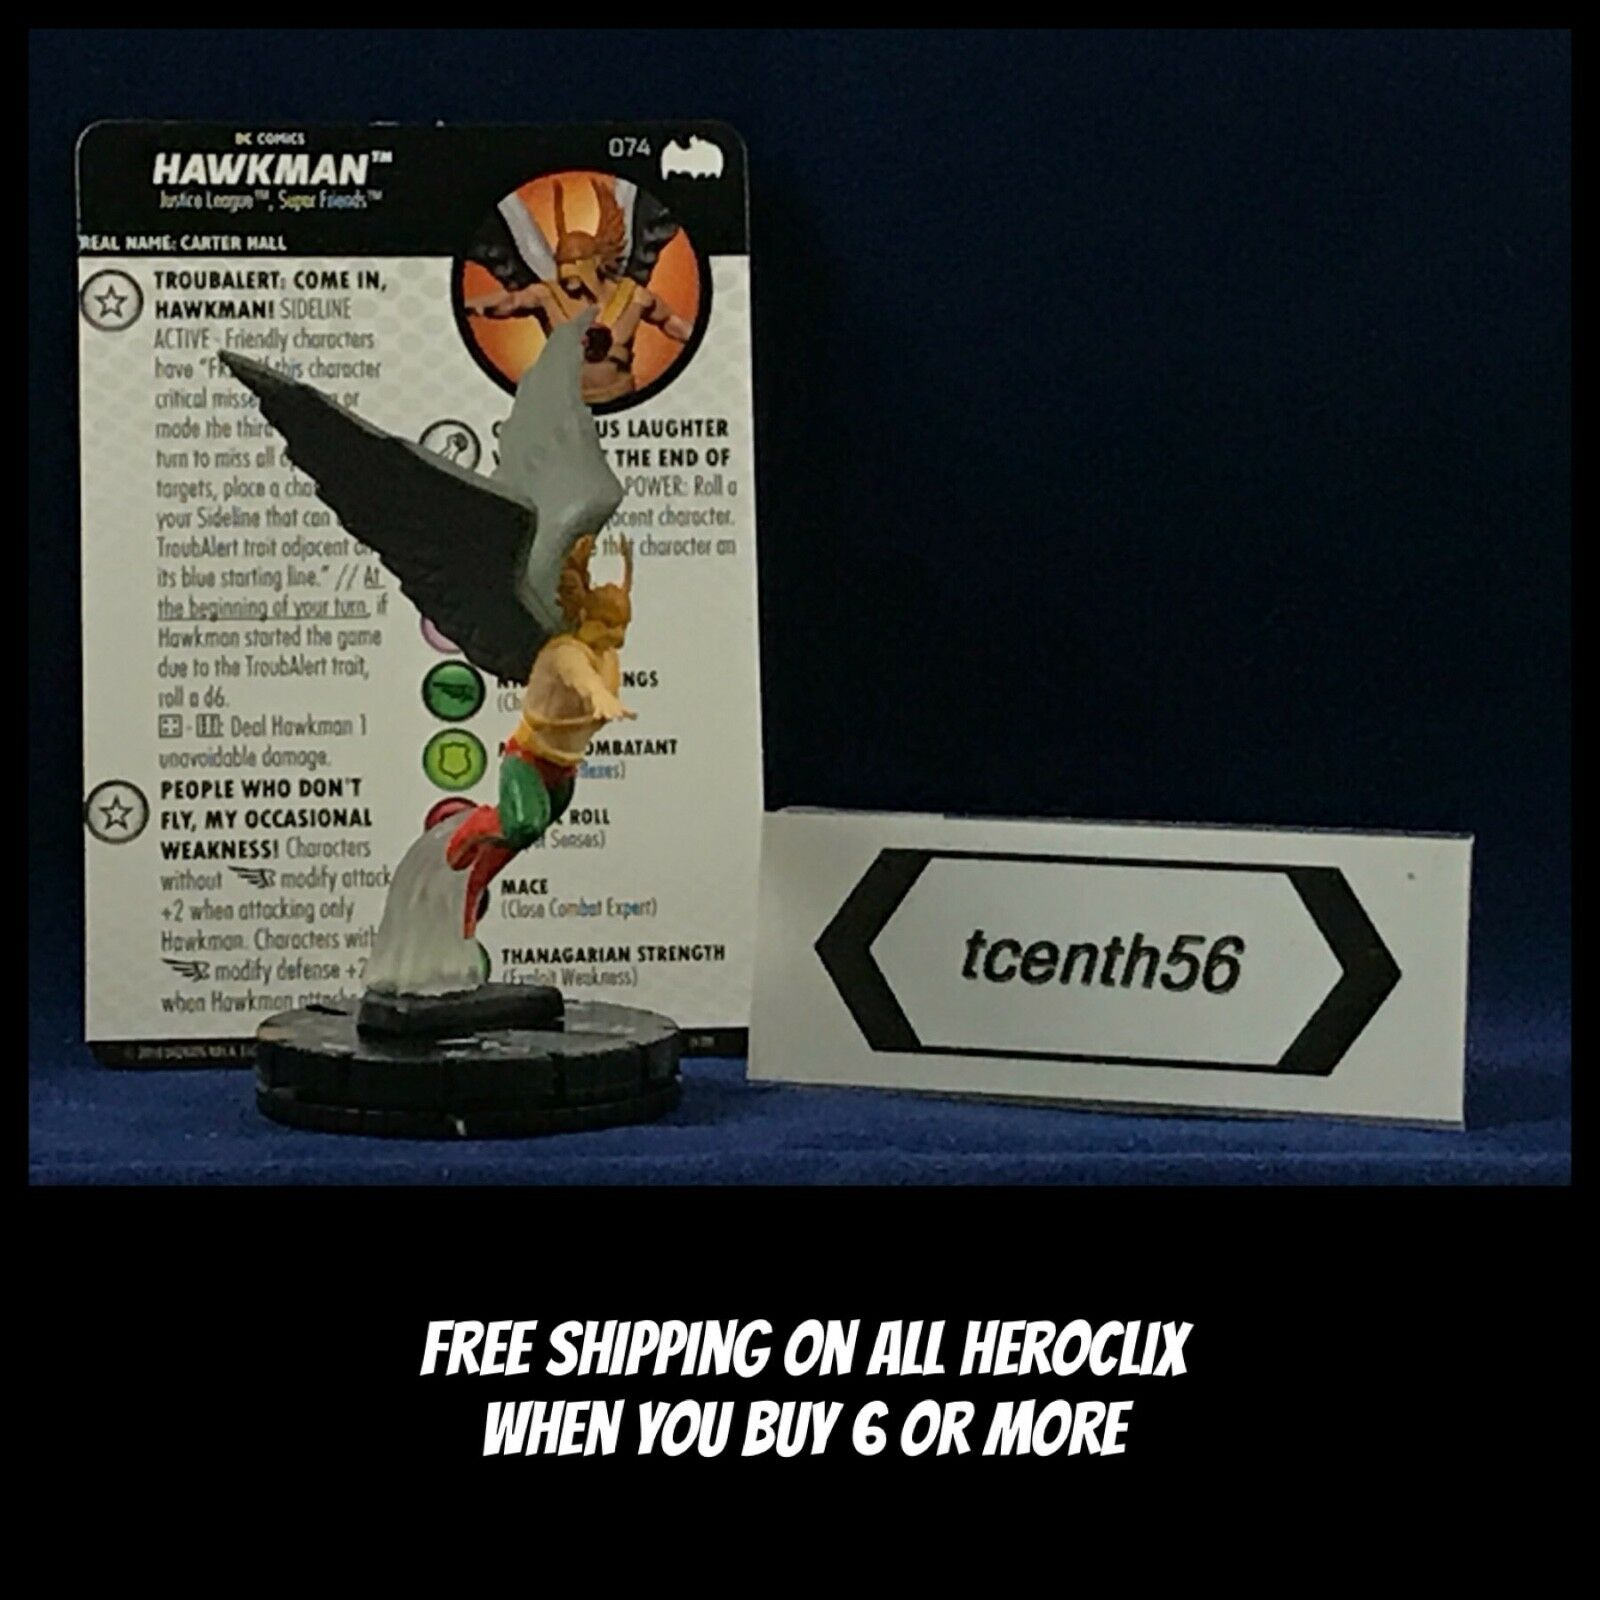 WizKids DC Heroclix Batman The Animated Series 074 Hawkman  Chase